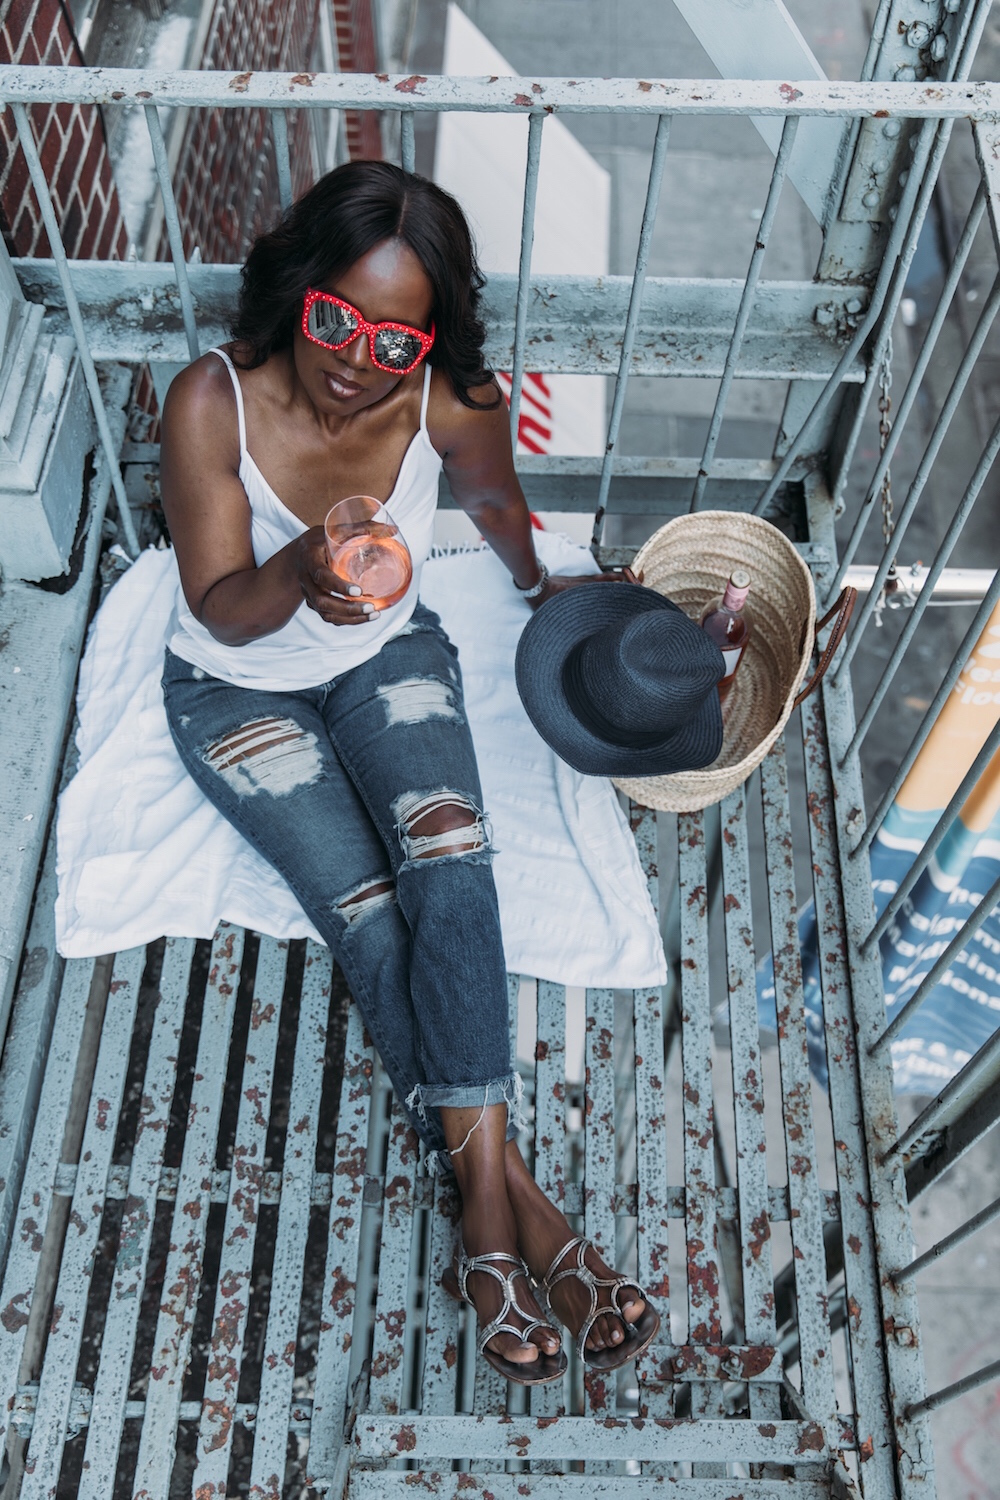 Fire escapes, July 4th 2018, Red Sunnies, Summer in NYC, Picnics